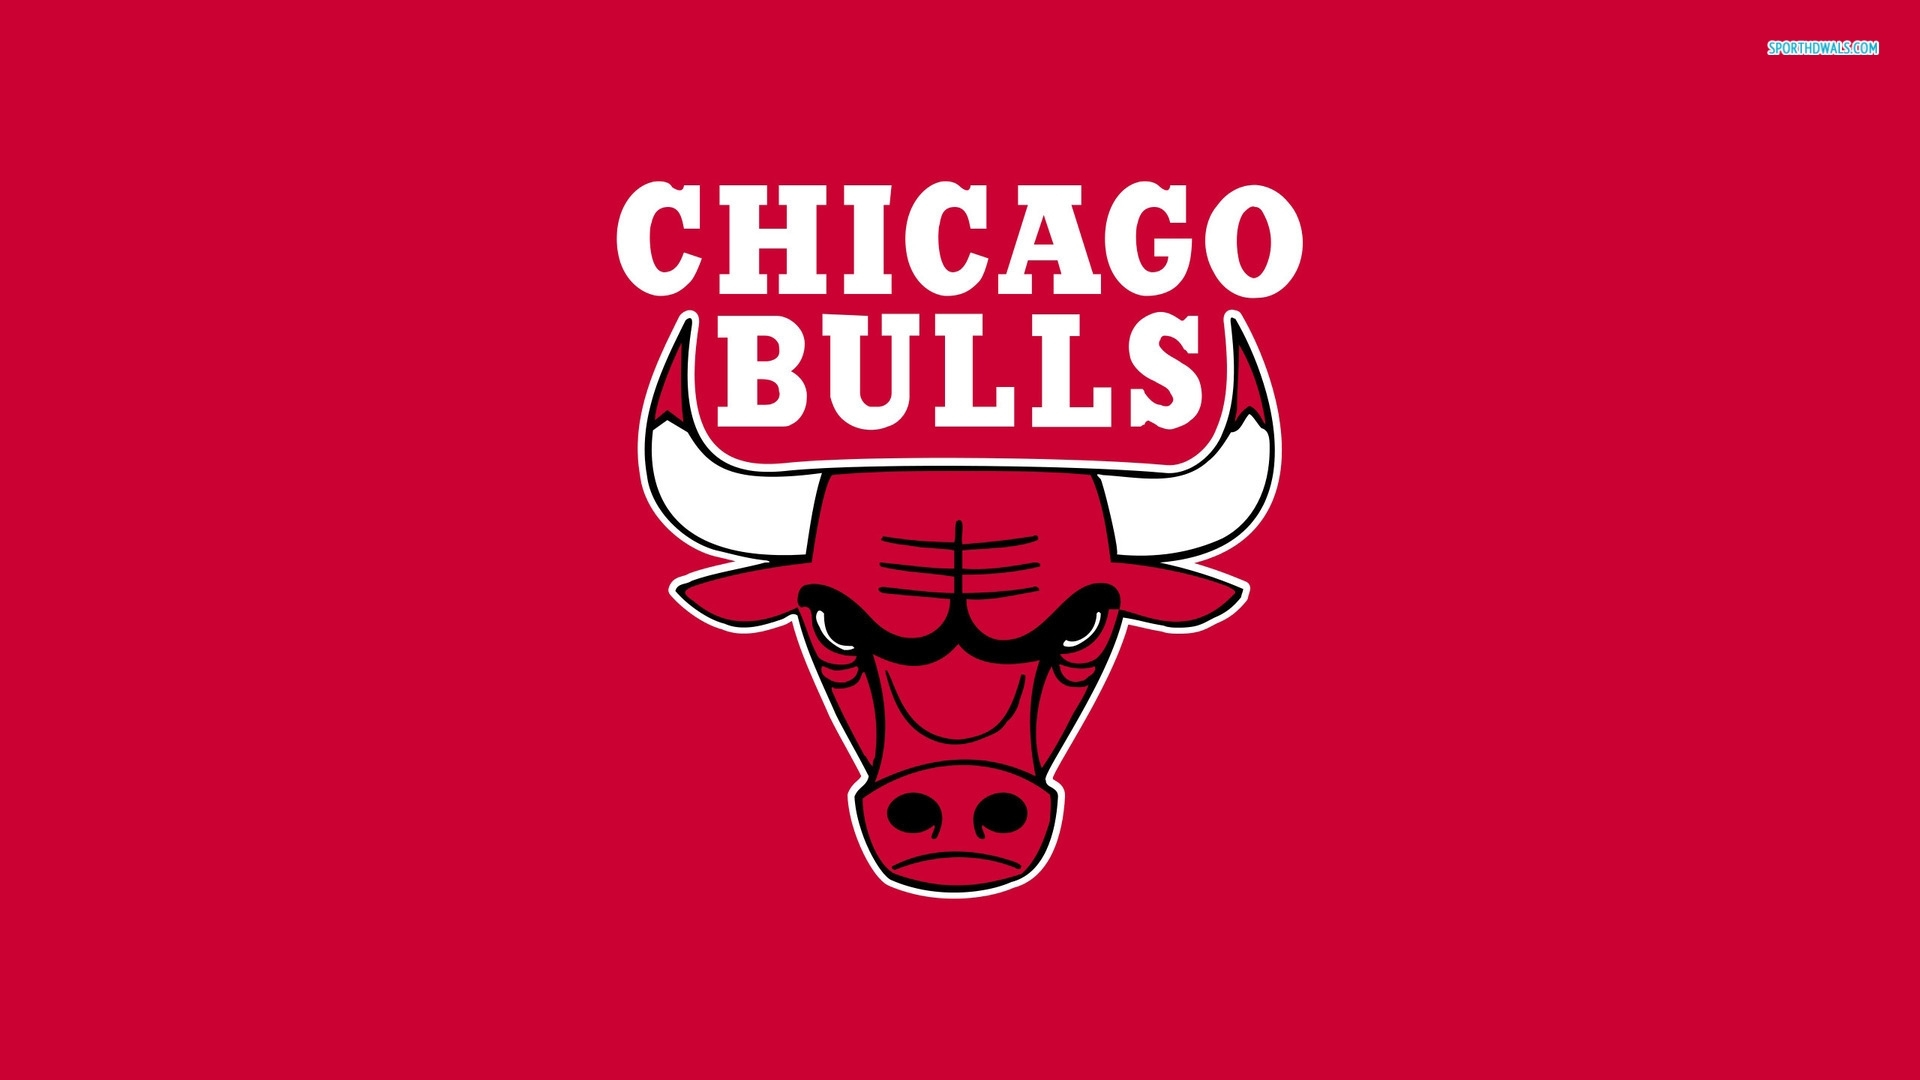 chicago bulls fonds d'écran hd